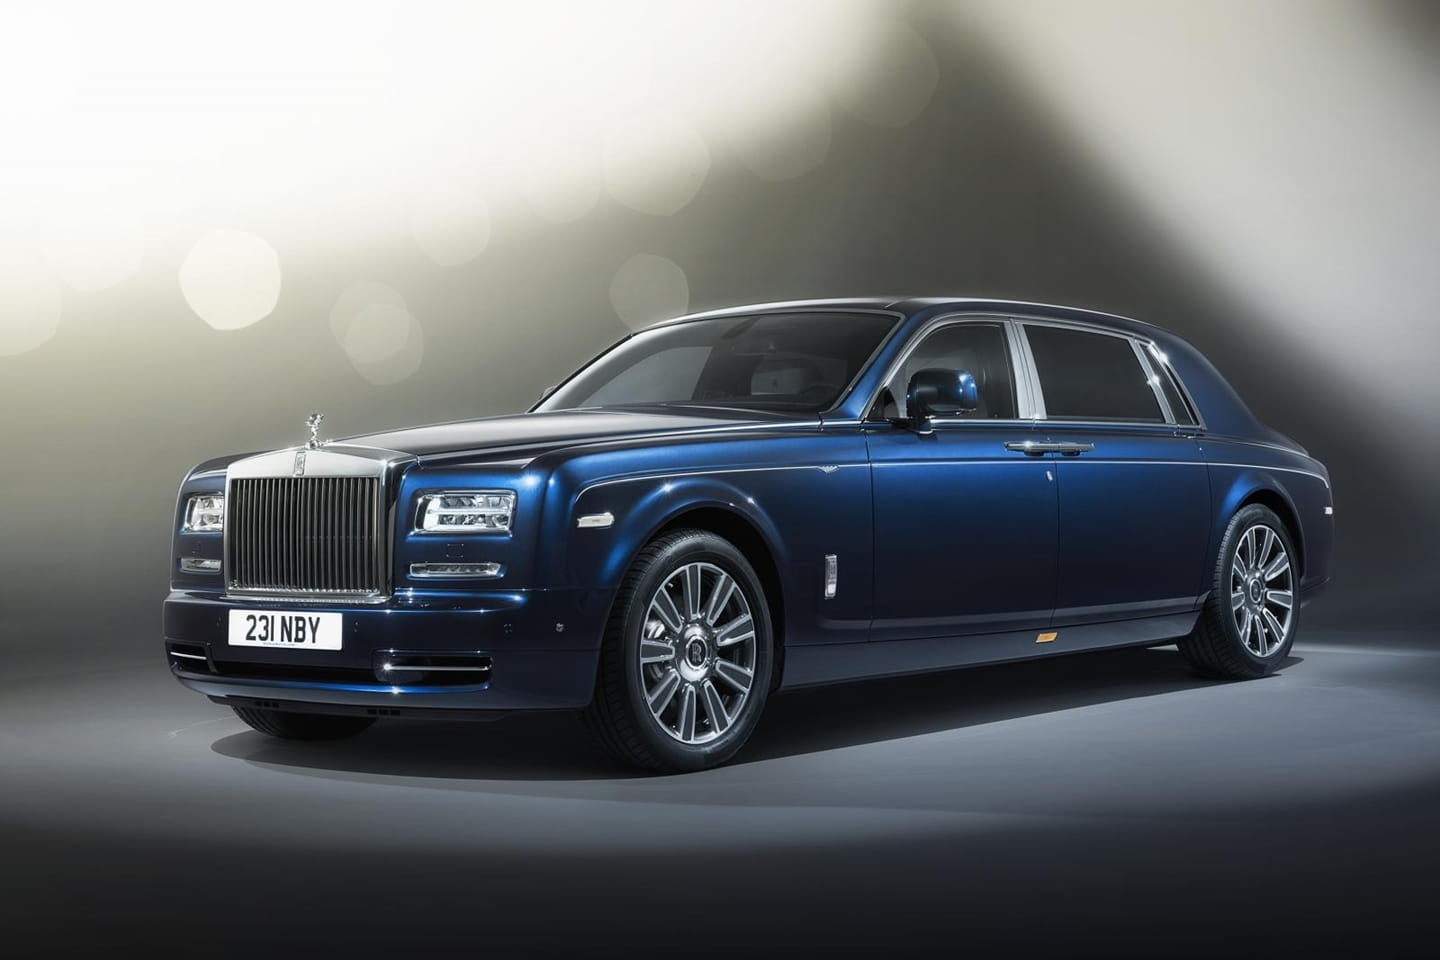 Rolls-Royce Phantom Limelight Collection: SPA care and haute couture